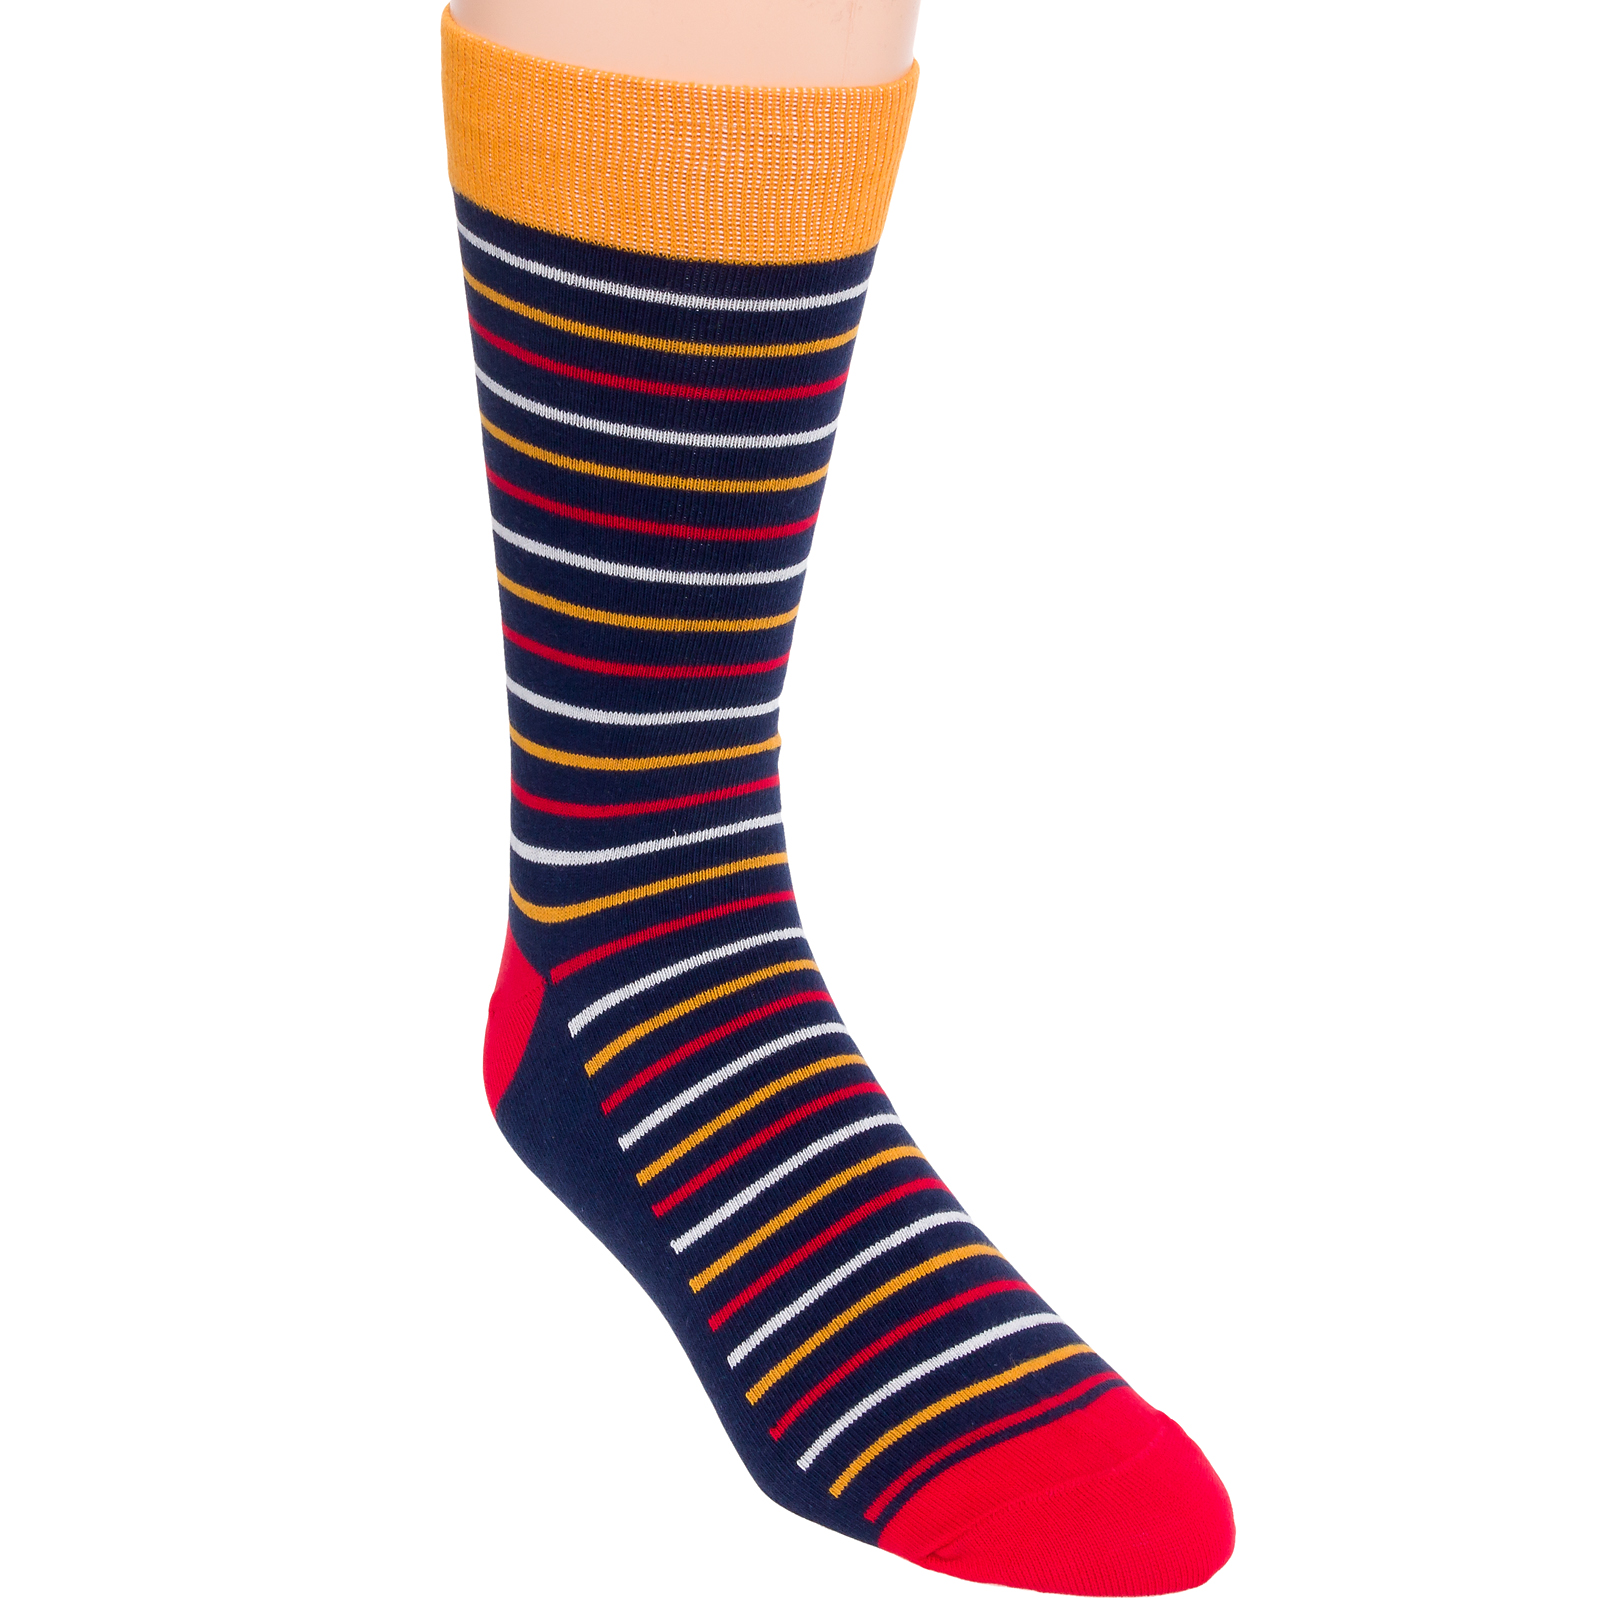 Wearing Bright Socks  Mens Colorful Sock Rules  When